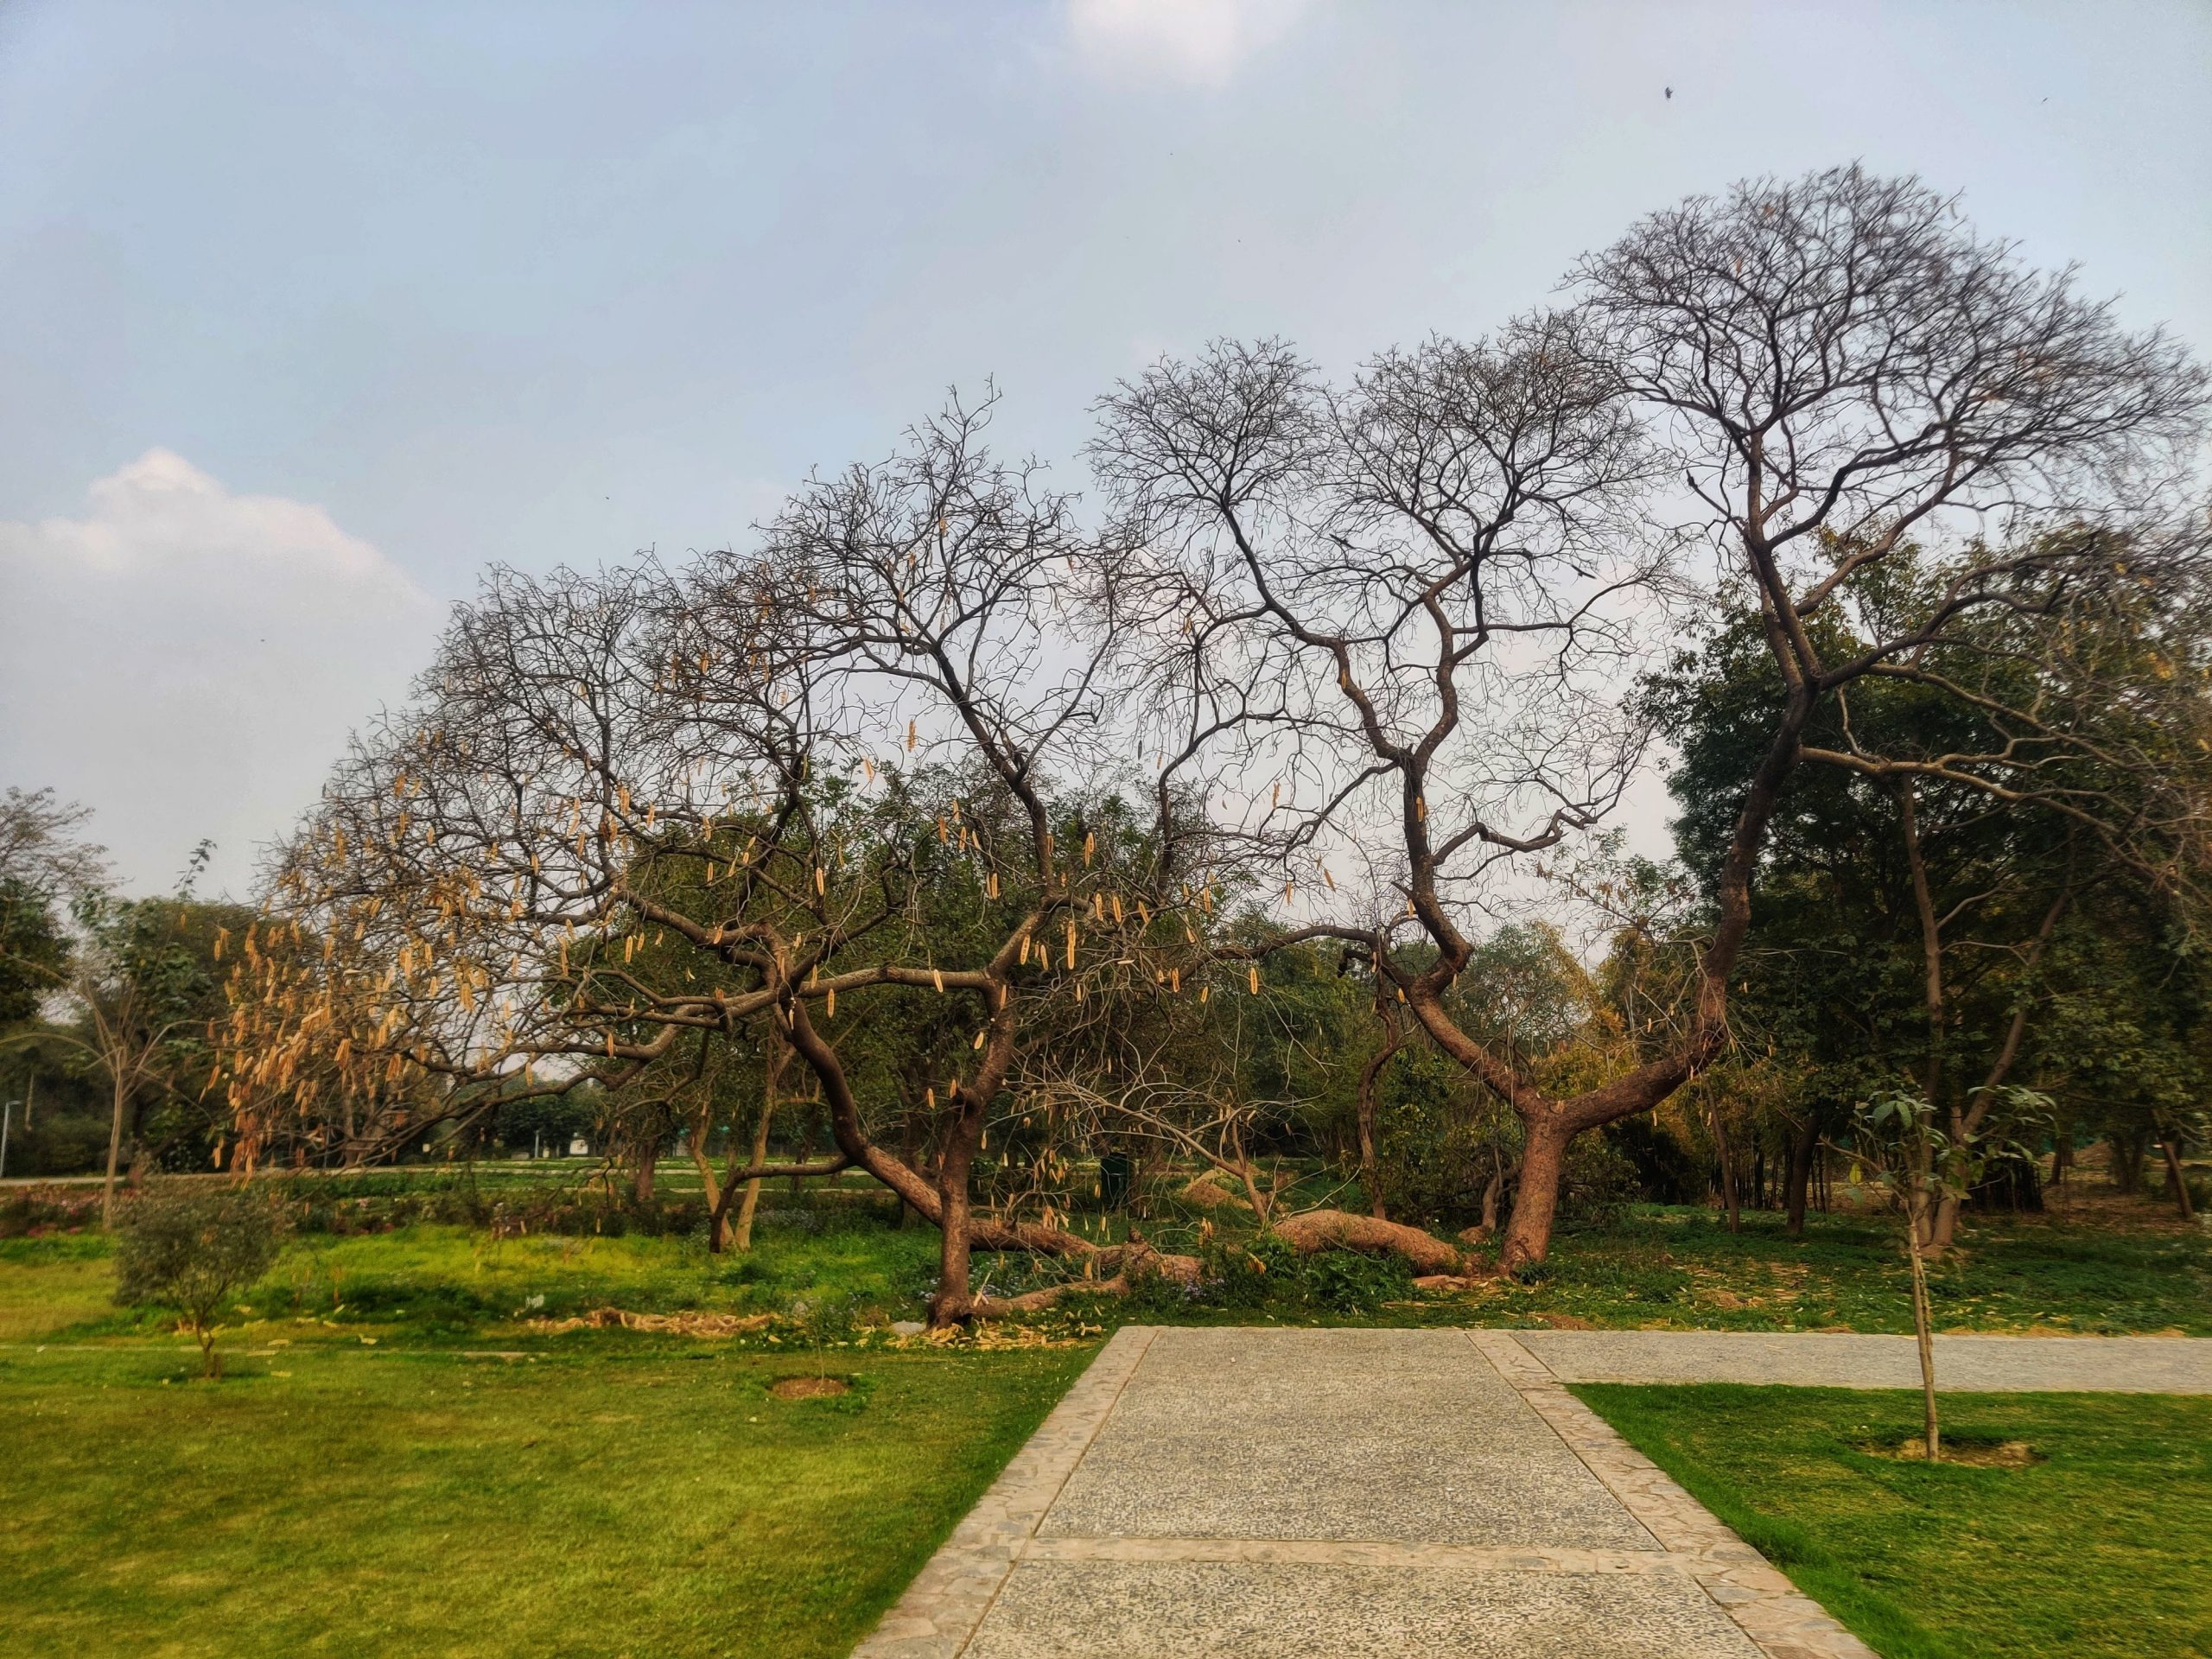 An old tree at Sunder Nursery, Delhi